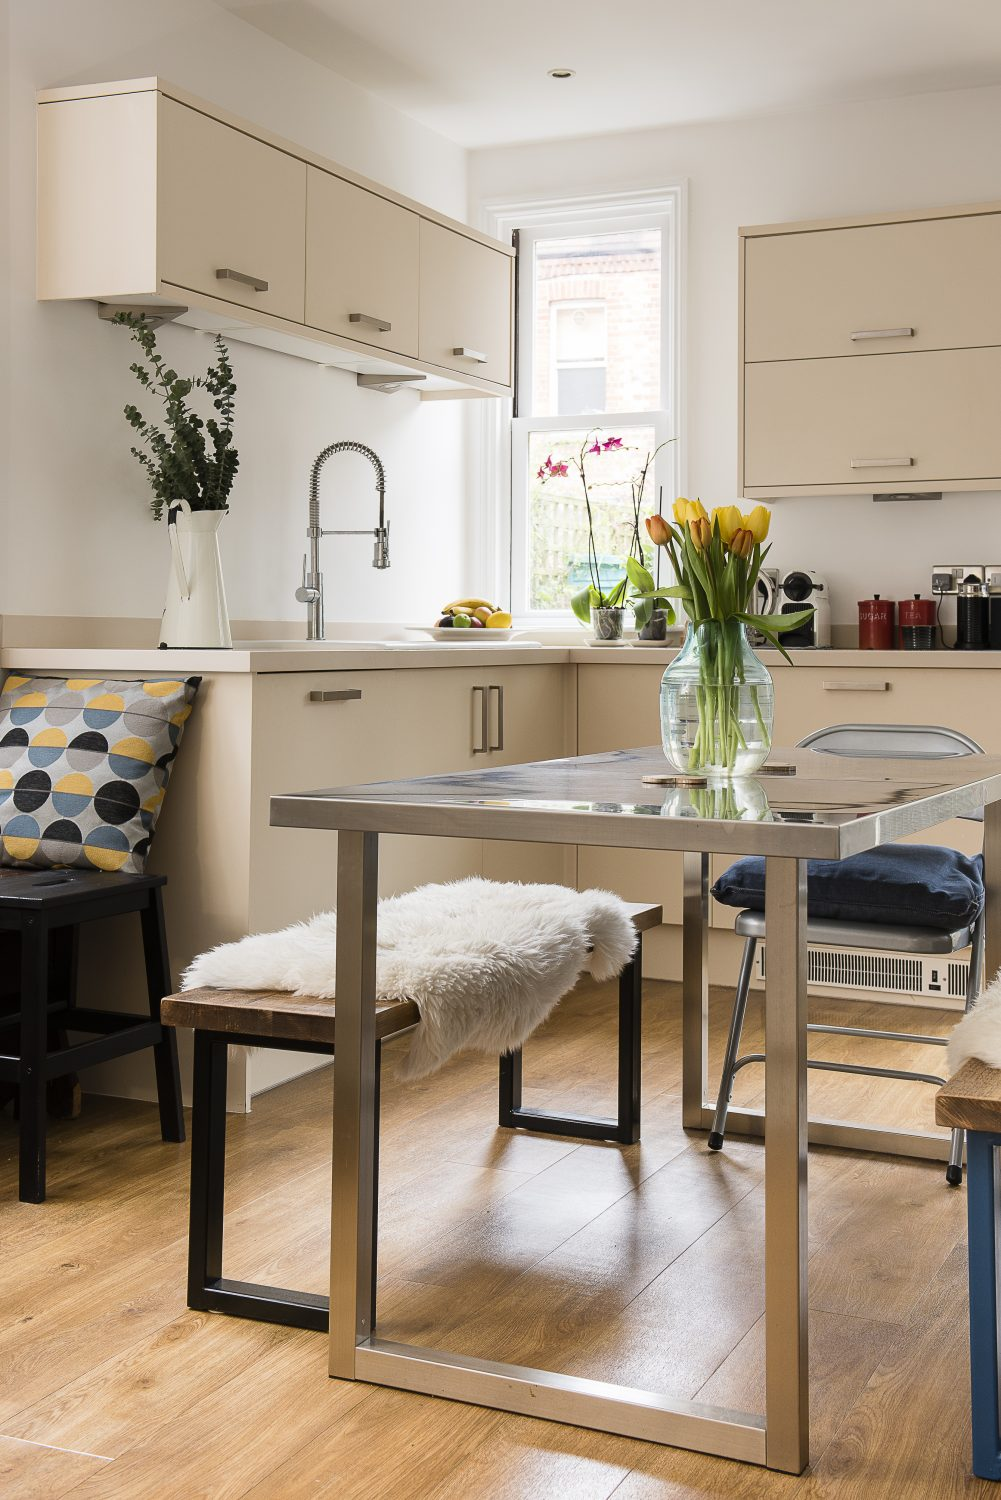 The kitchen's bi-fold doors open out into the courtyard garden. Caroline sourced the metal kitchen table from eBay